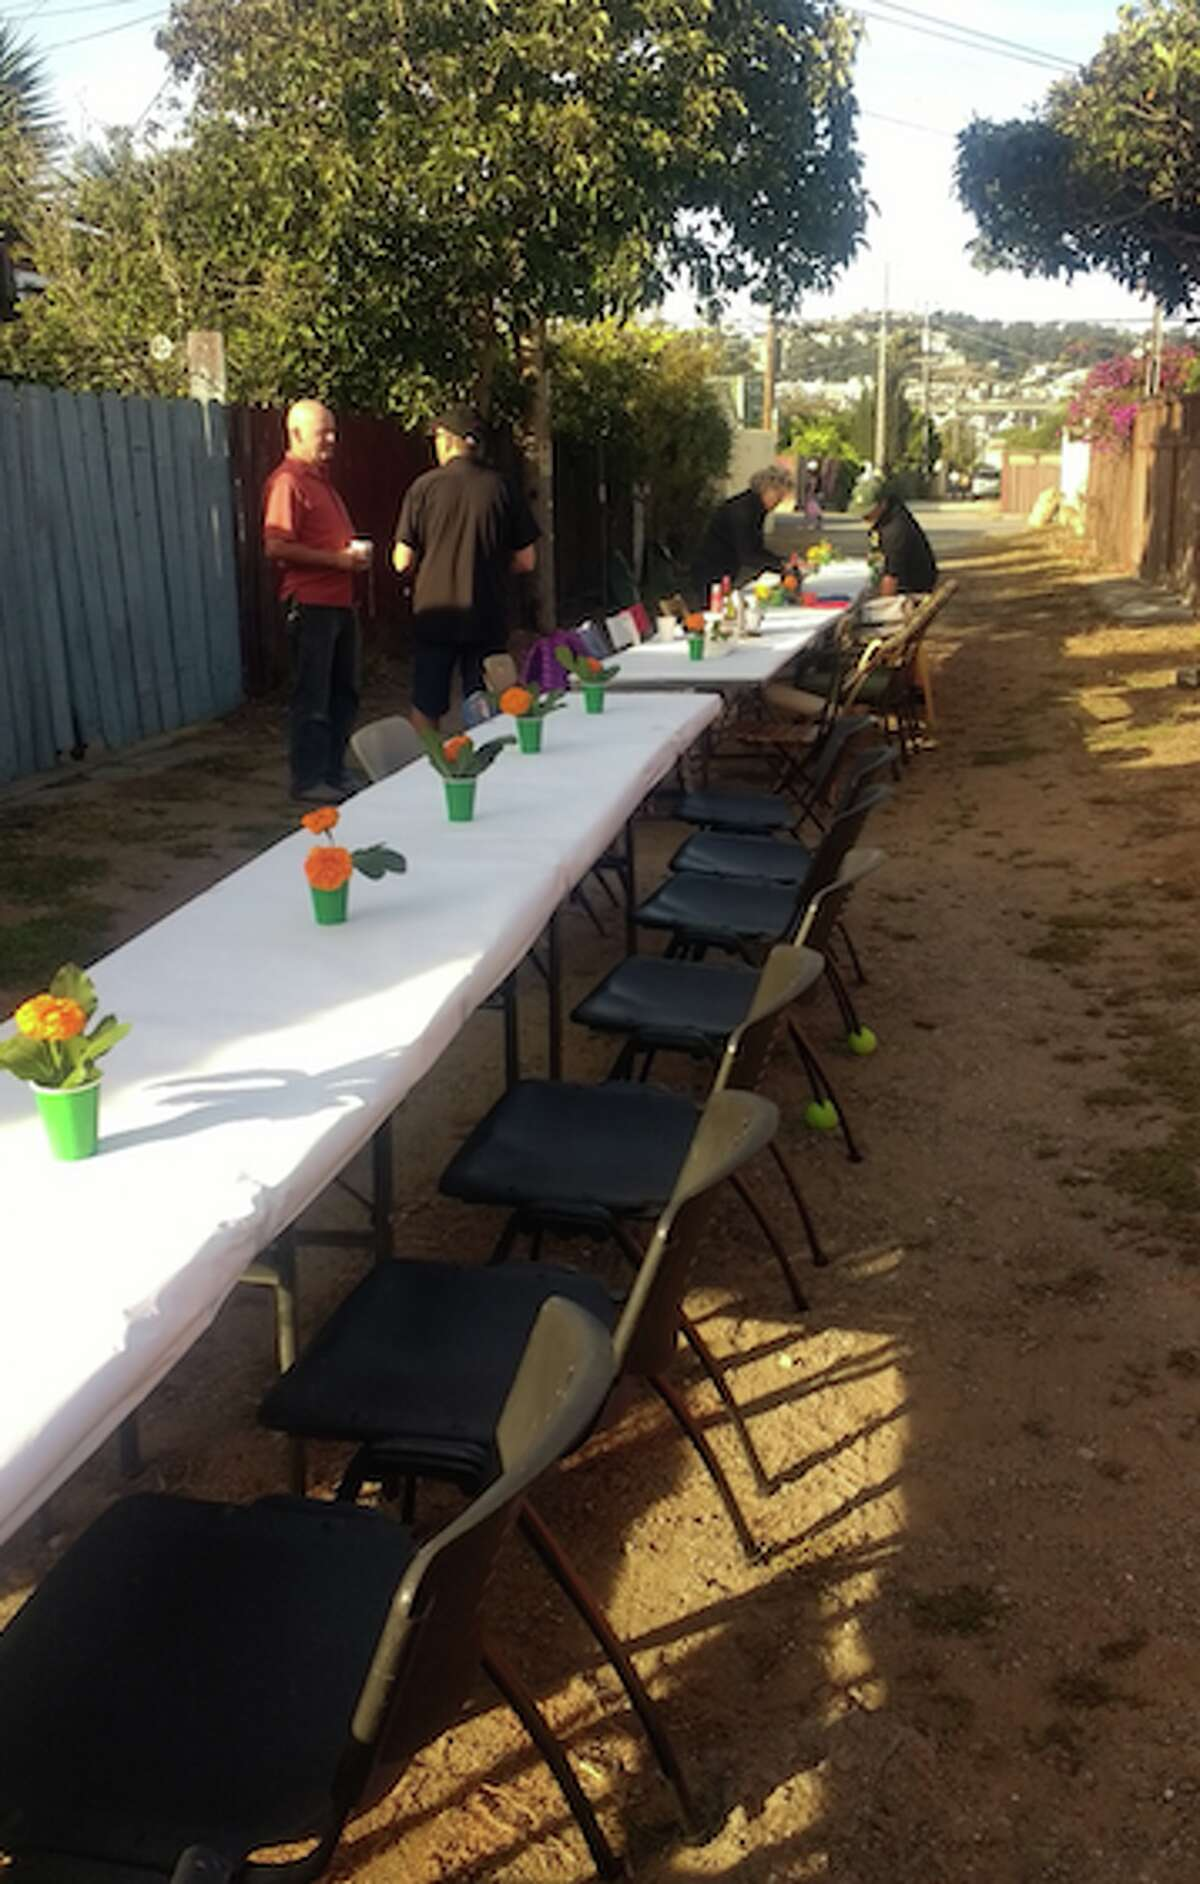 The tables are arranged and decorated in the afternoon before the annual Mission Terrace Alley Party.